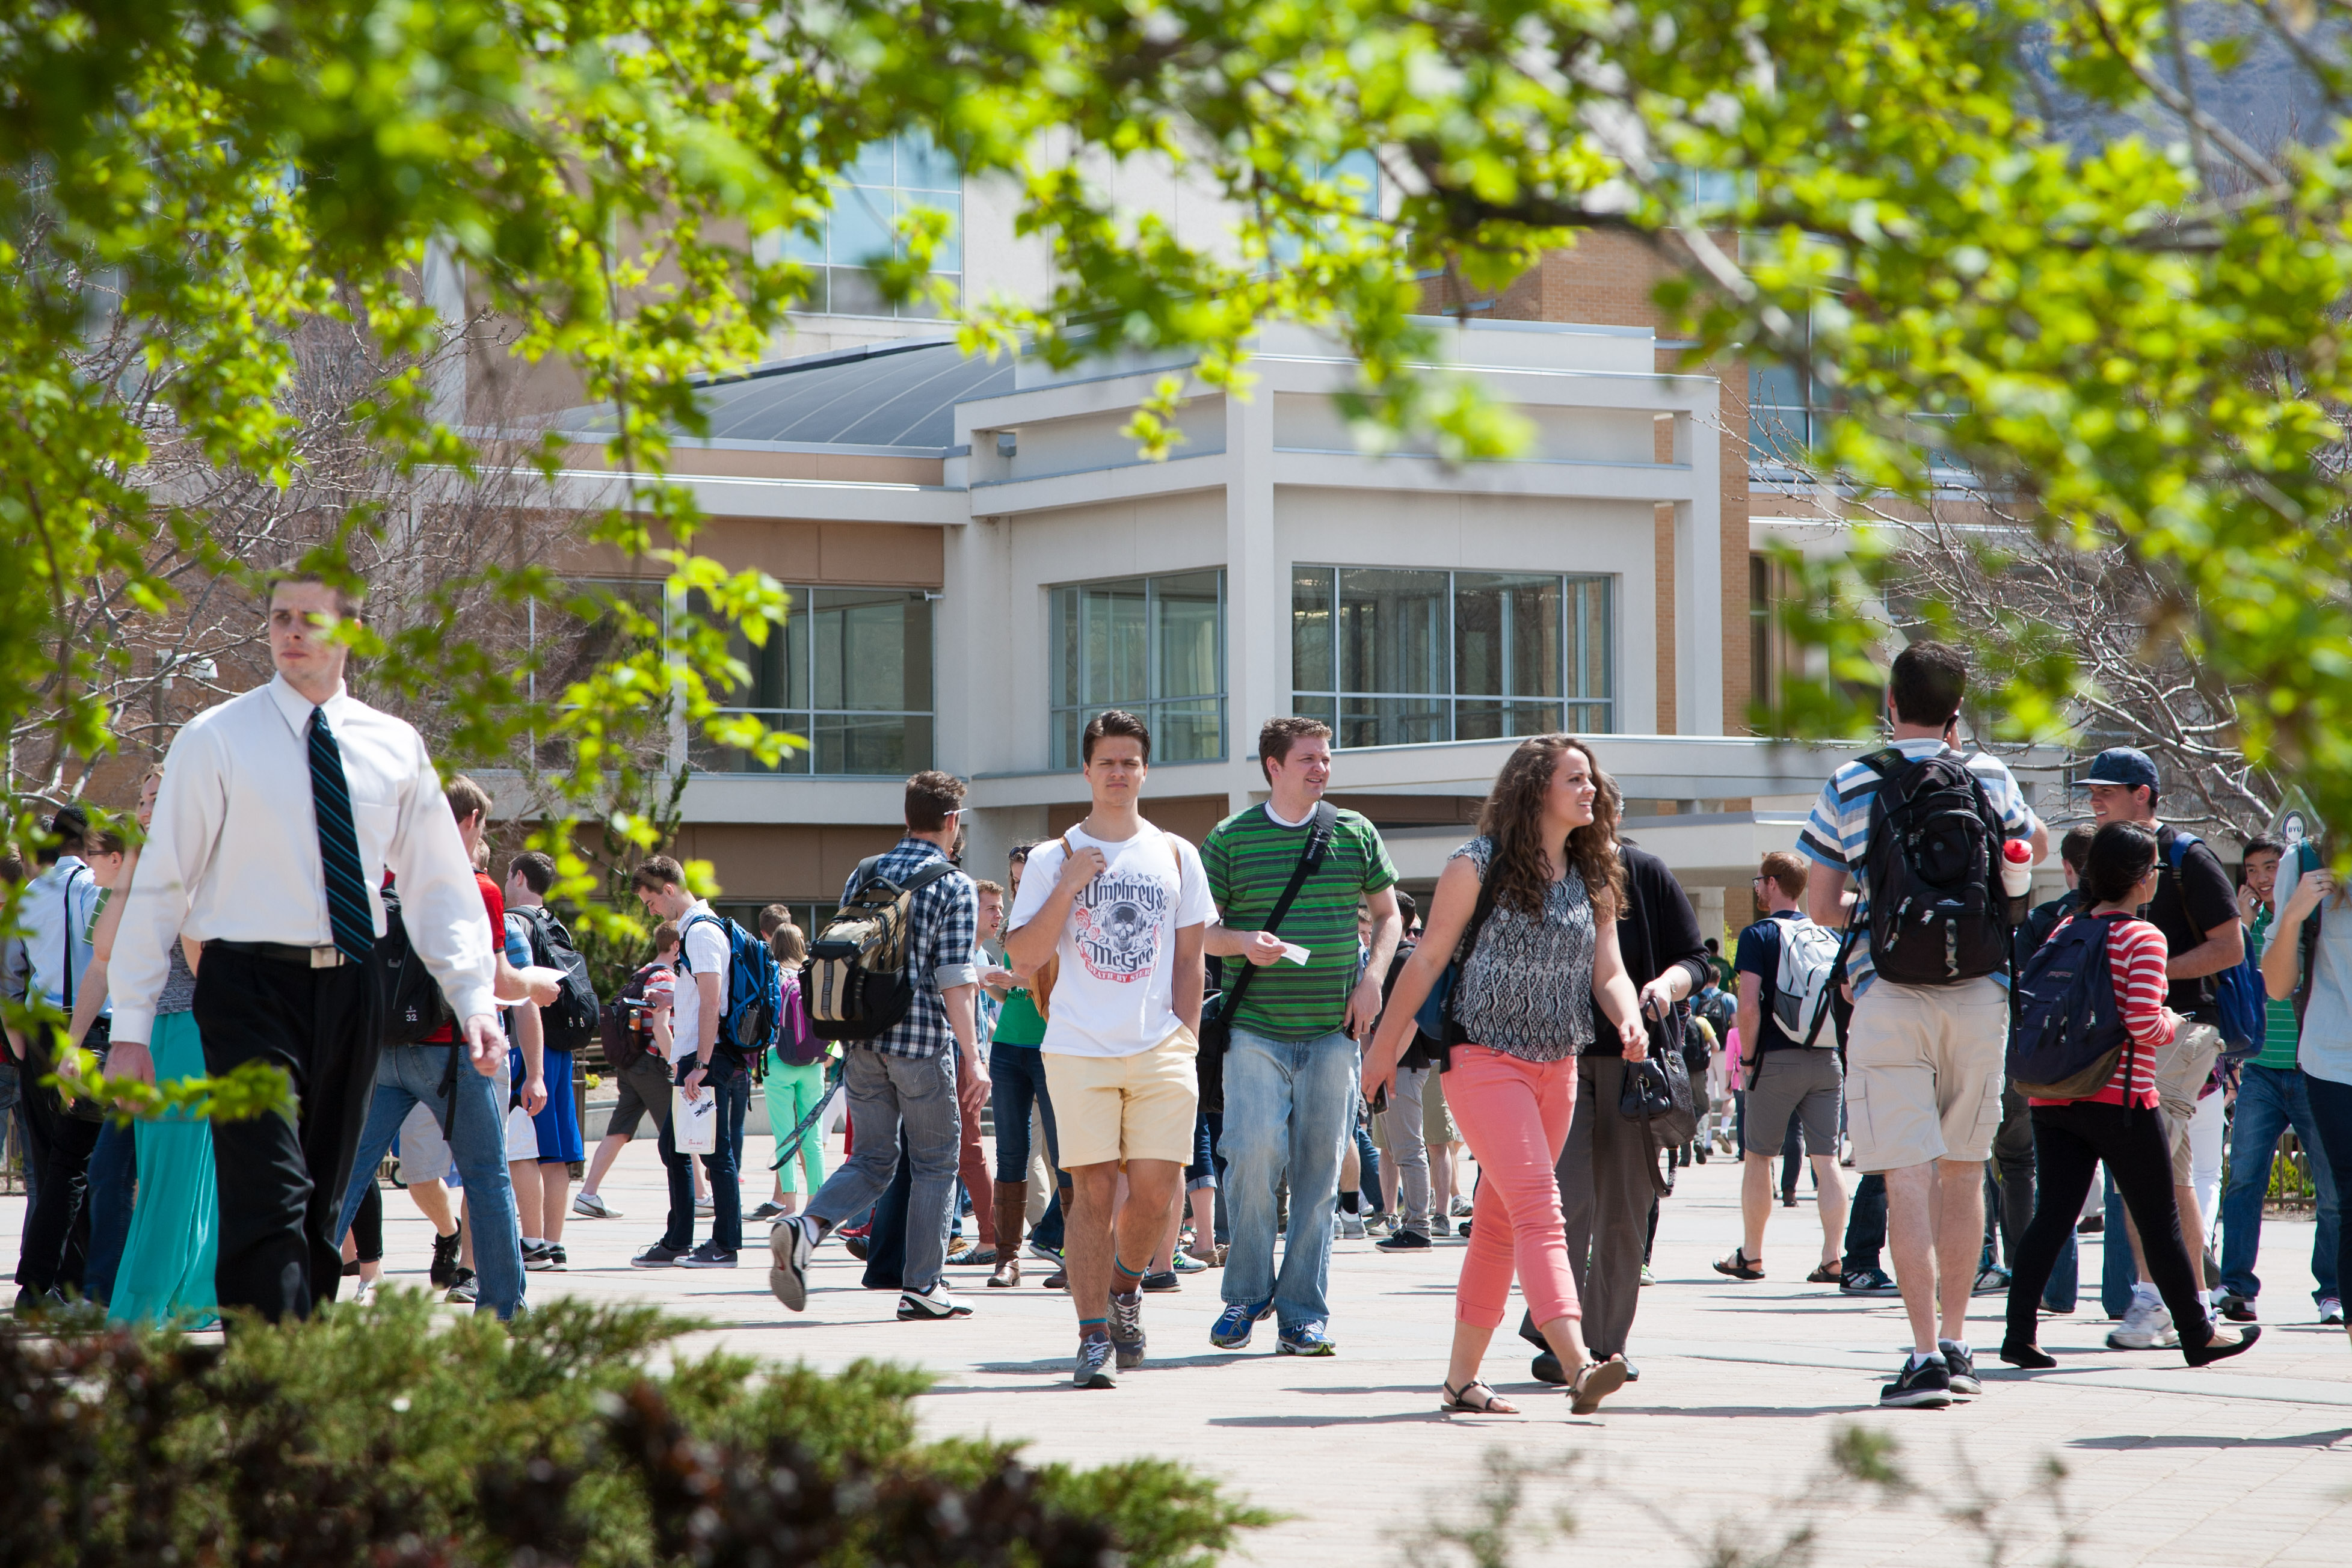 BYU students return to school to start spring/summer classes. Photo by Elliot Miller.